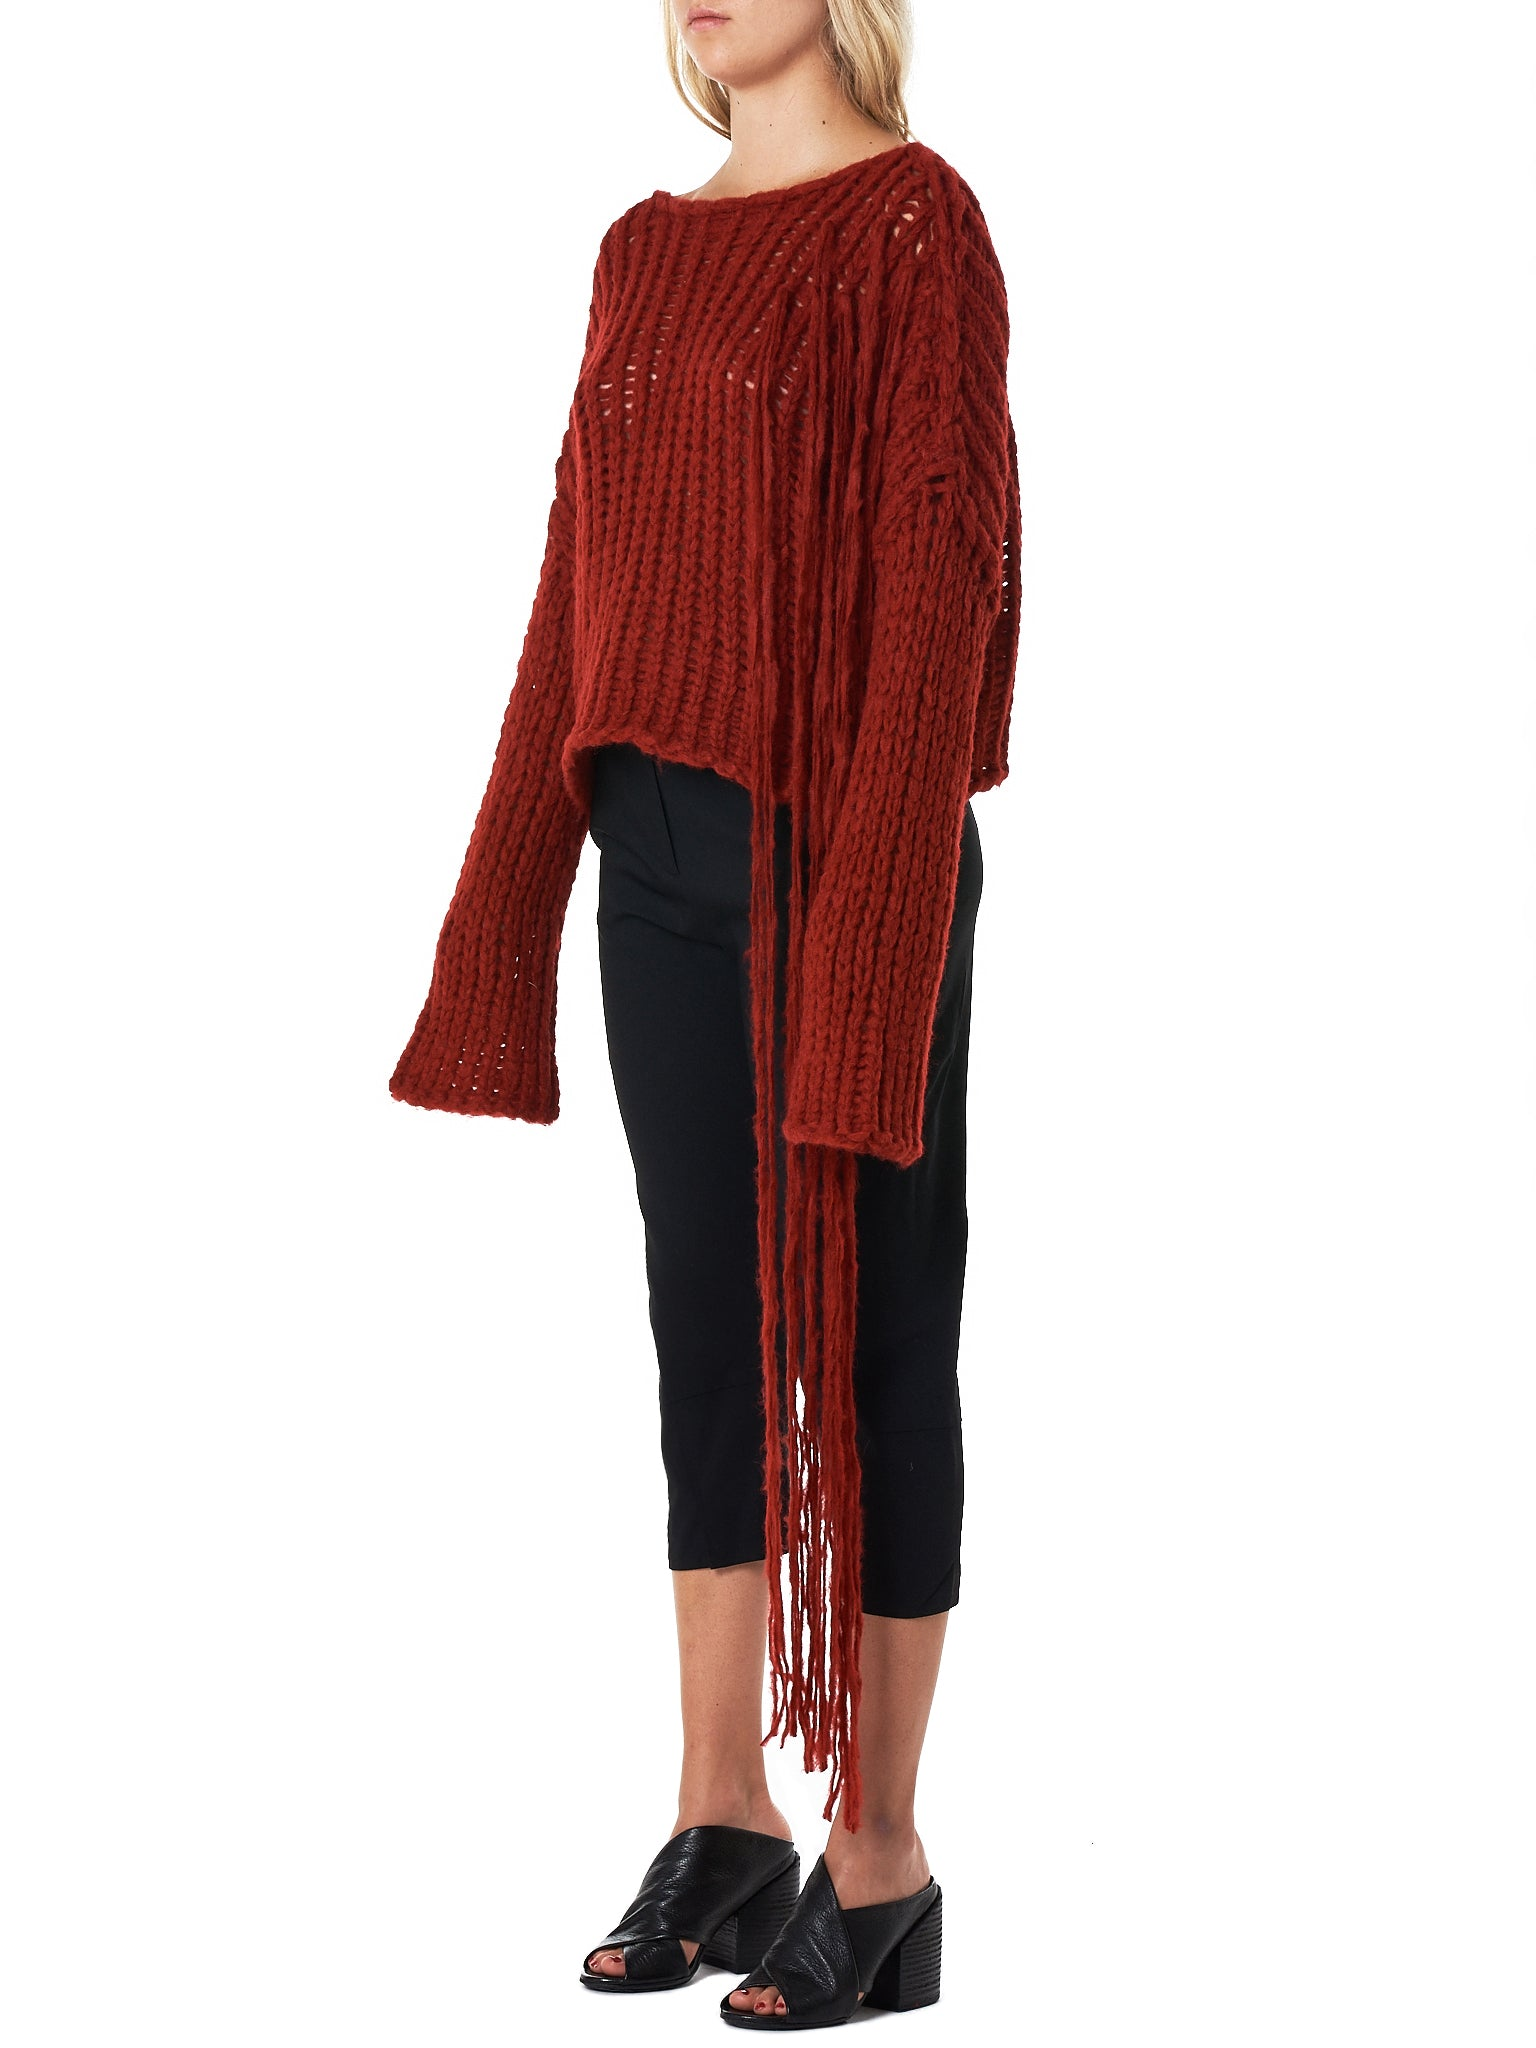 Isabel Benenato Sweater - Hlorenzo Side